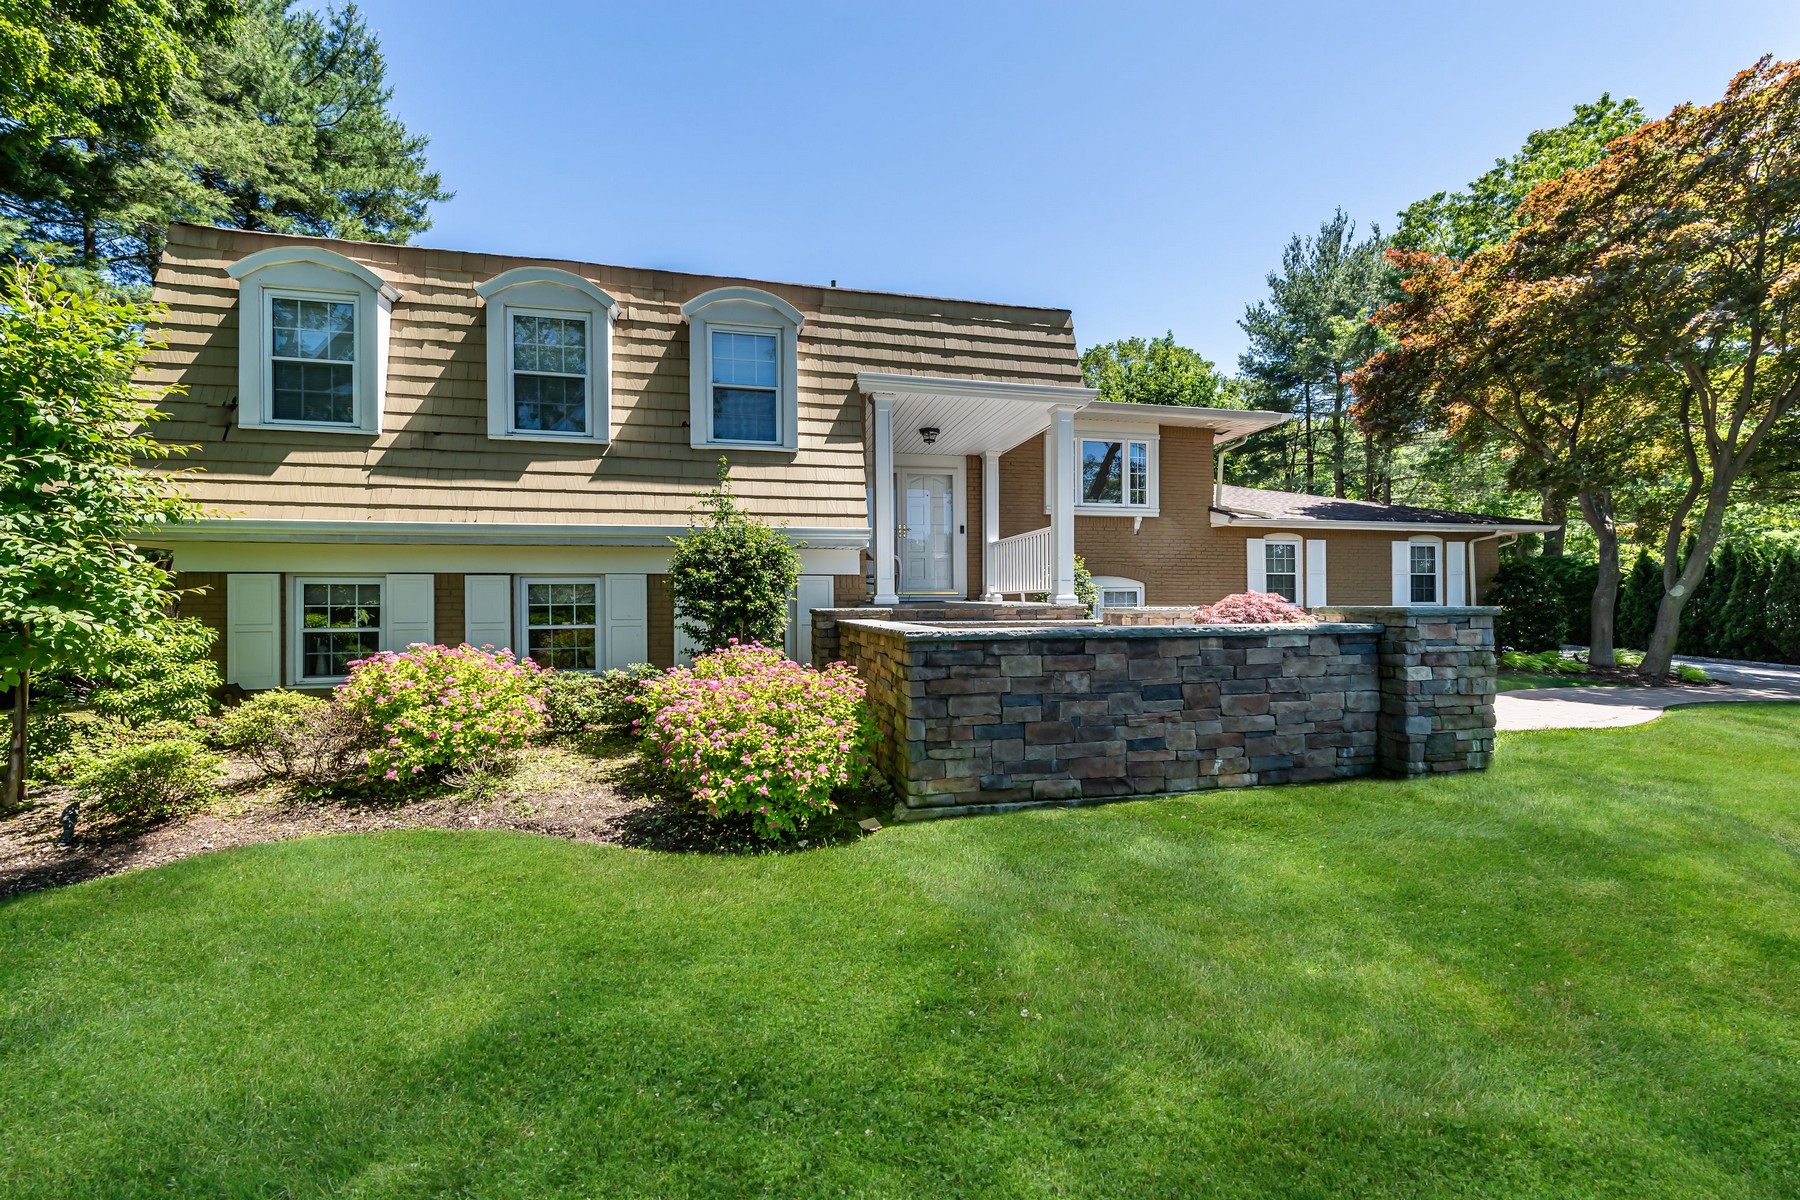 Single Family Homes for Active at Woodbury 151 Bristol Dr Woodbury, New York 11797 United States